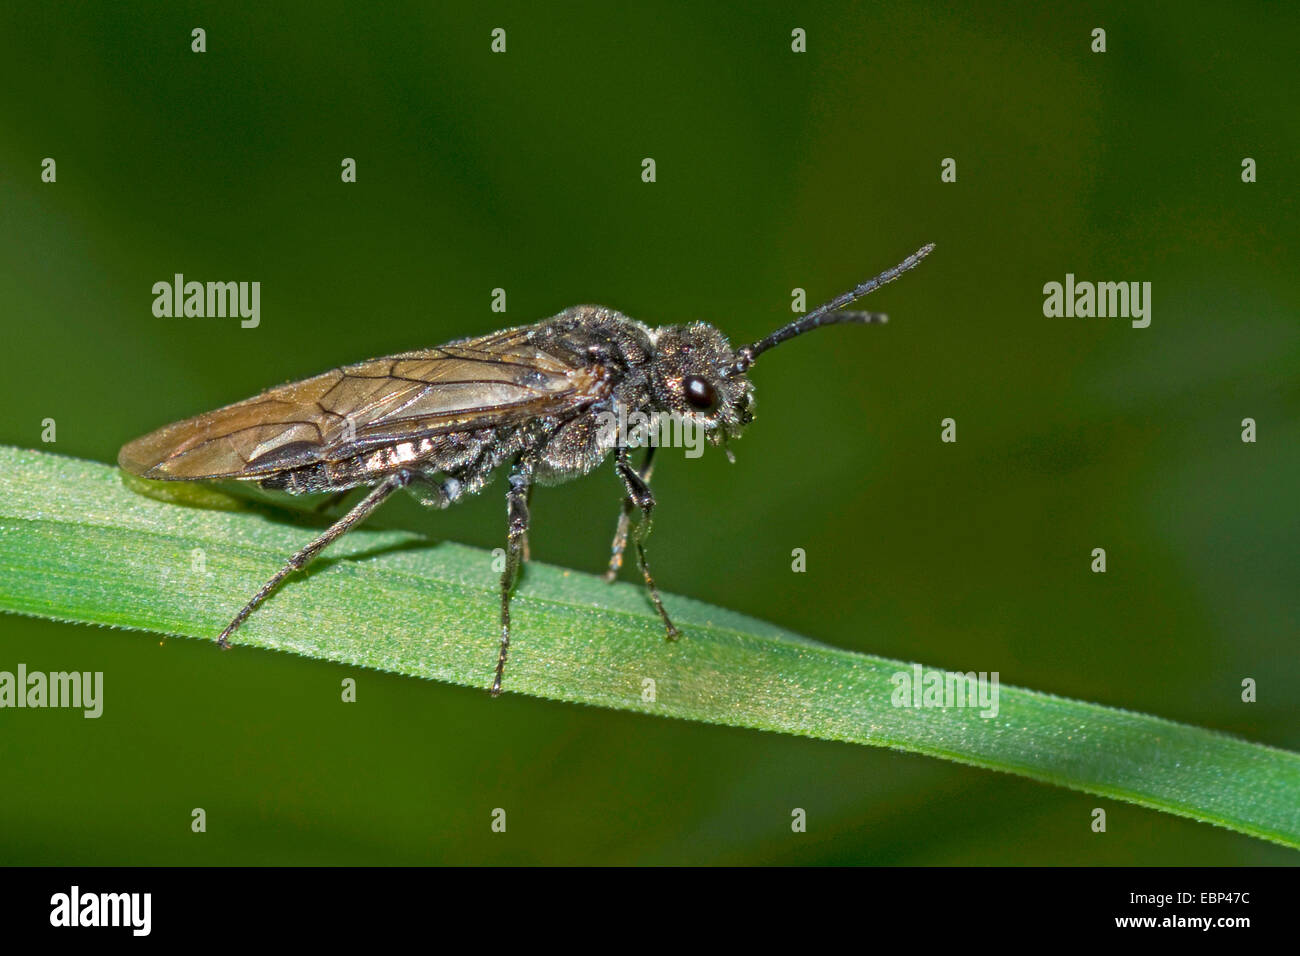 Sawfly (Dolerus spec.), sitting on a blade of grass, Germany - Stock Image